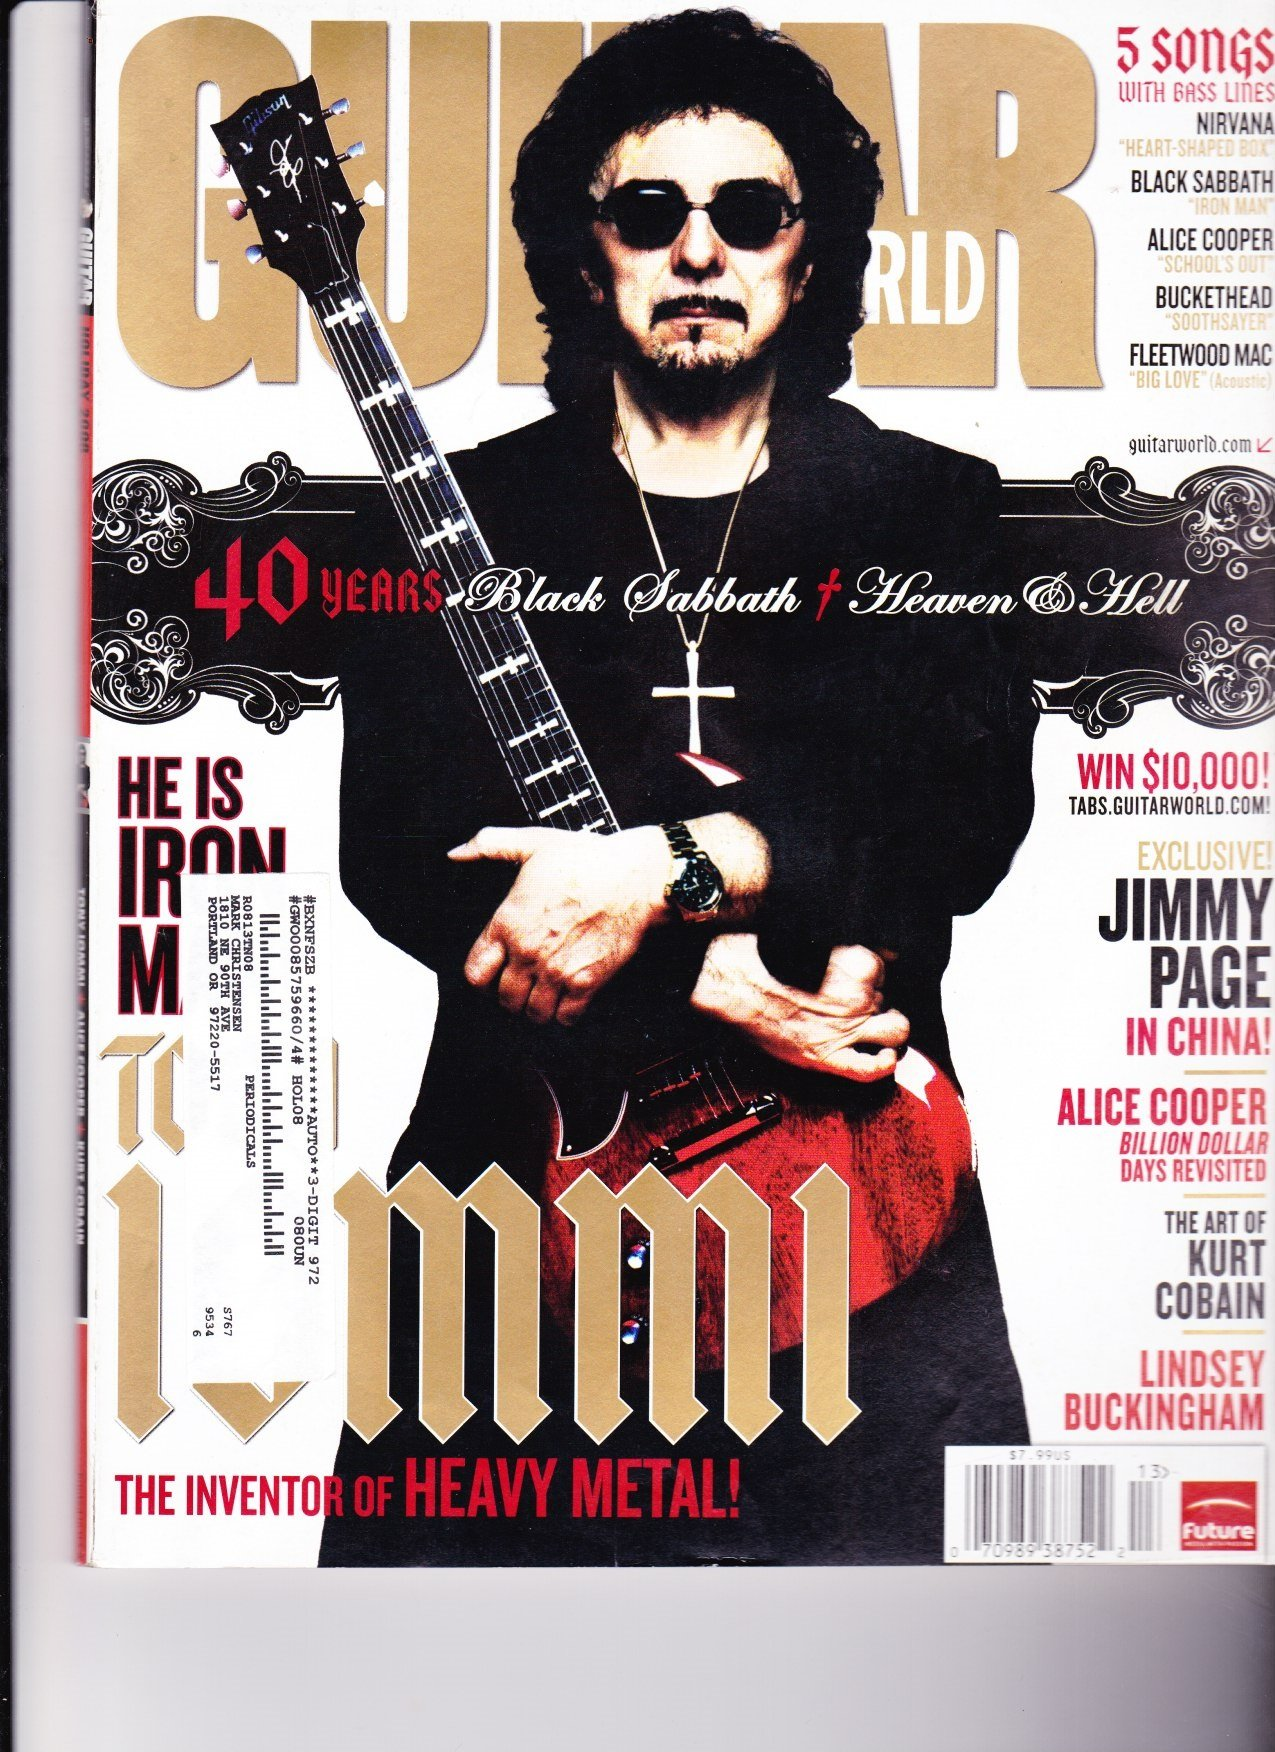 Download TONY IOMMI BLACK SABBATH GUITAR WORLD HOLIDAY 2008 5 SONGS WITH BASS LINES NIRVANA ALICE COOPER AND MORE! ebook